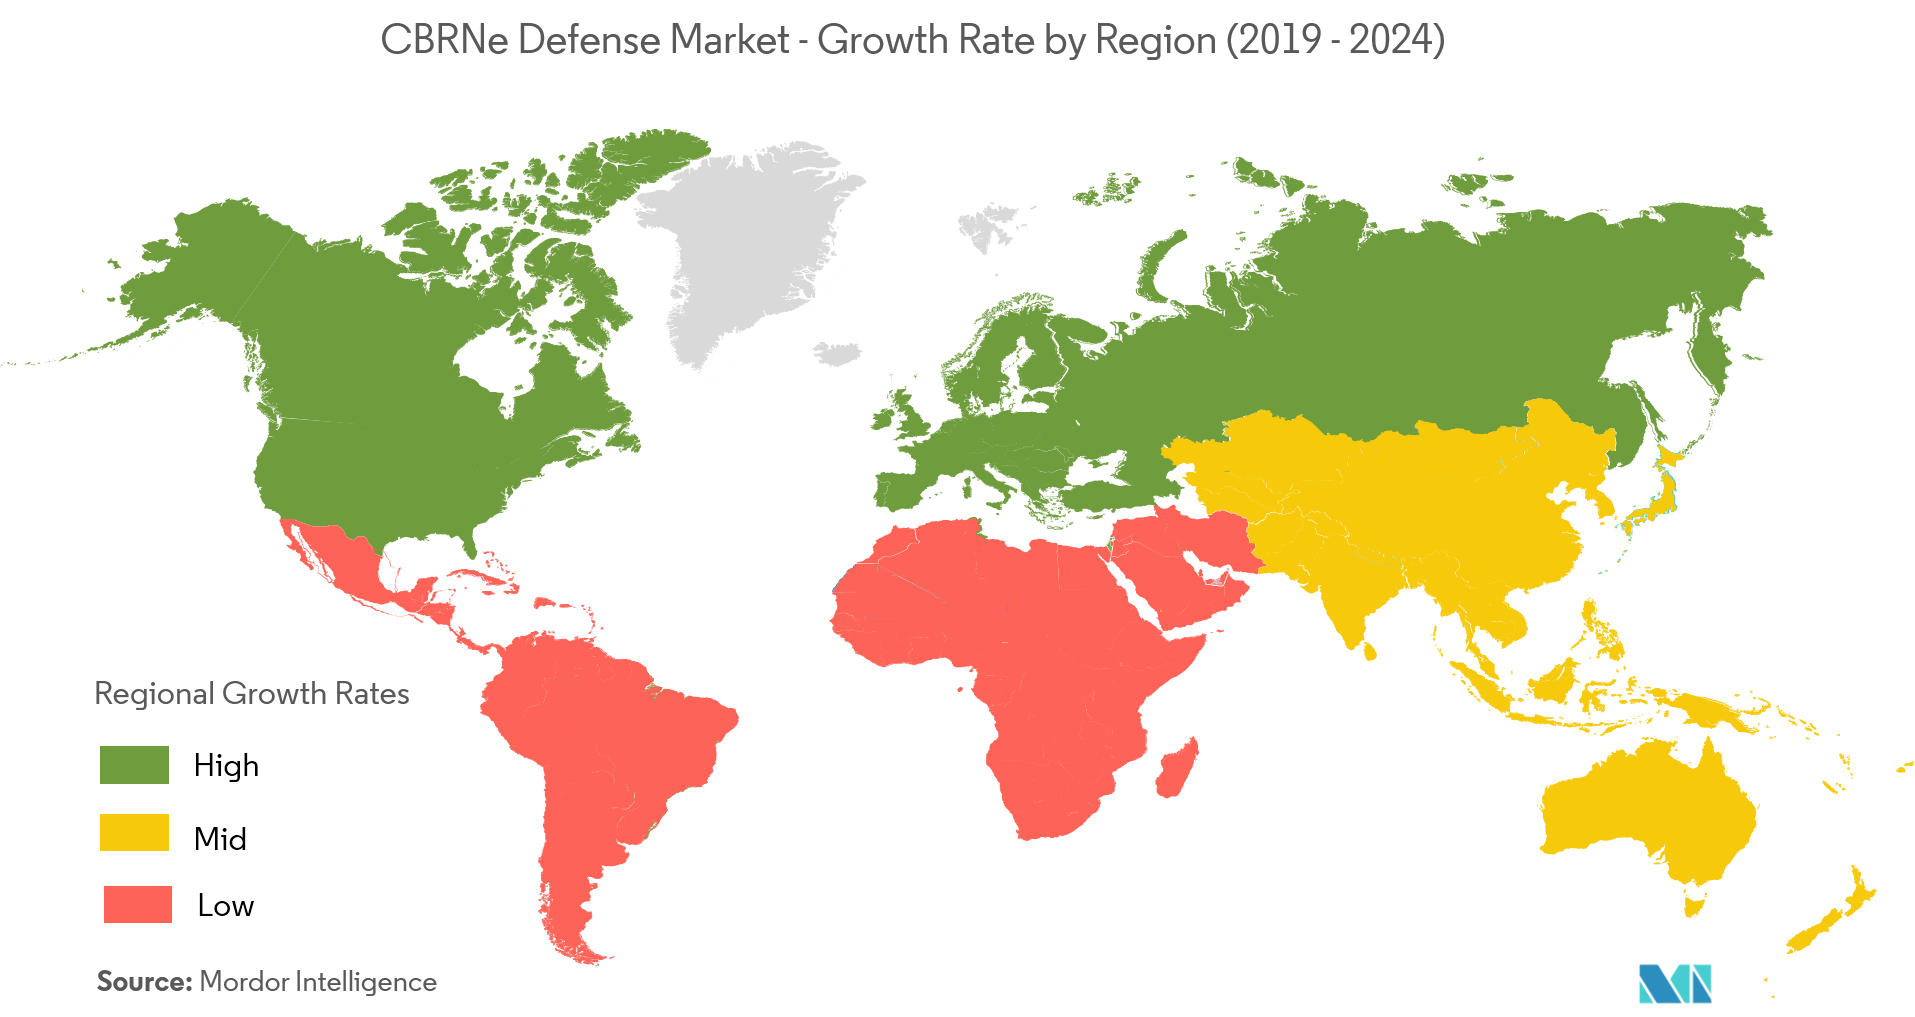 cbrne defense market geography